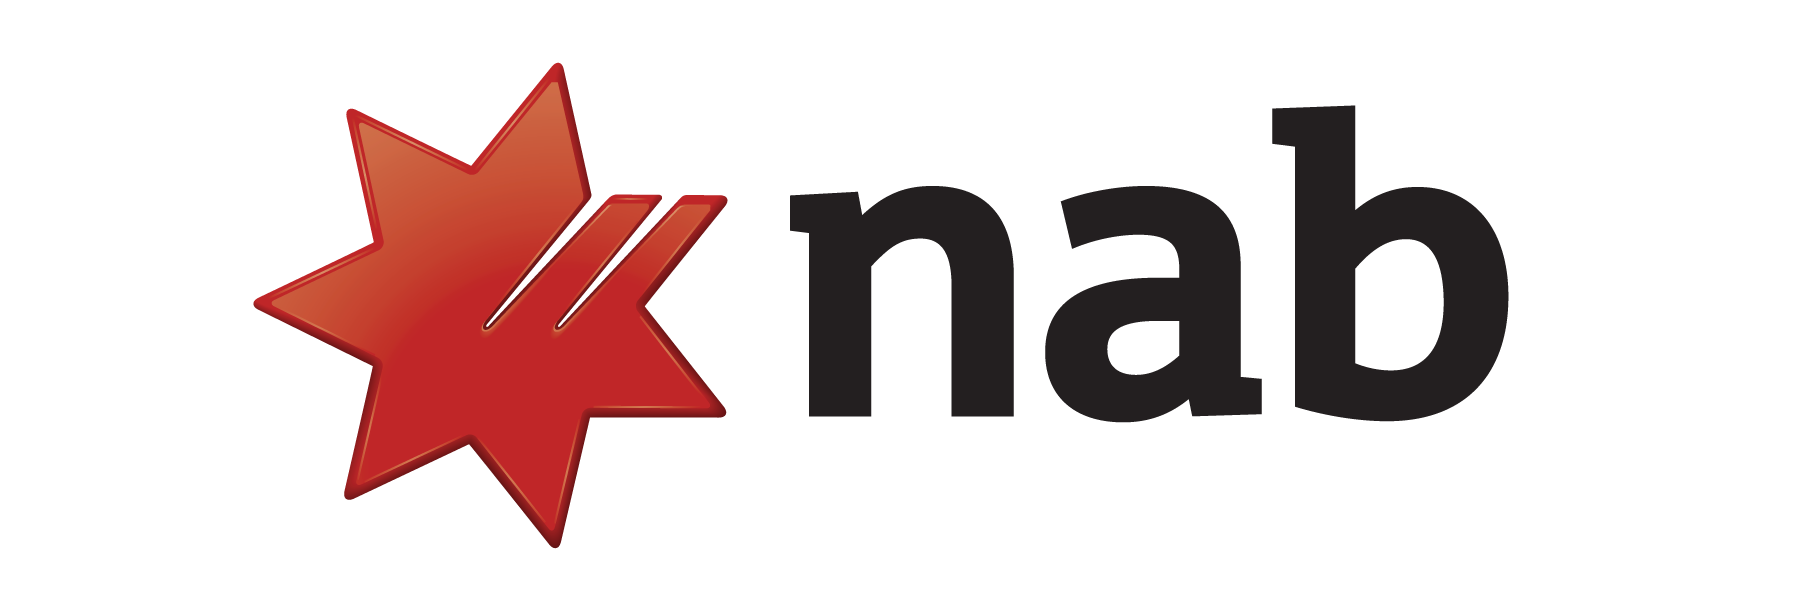 National australia bank logo